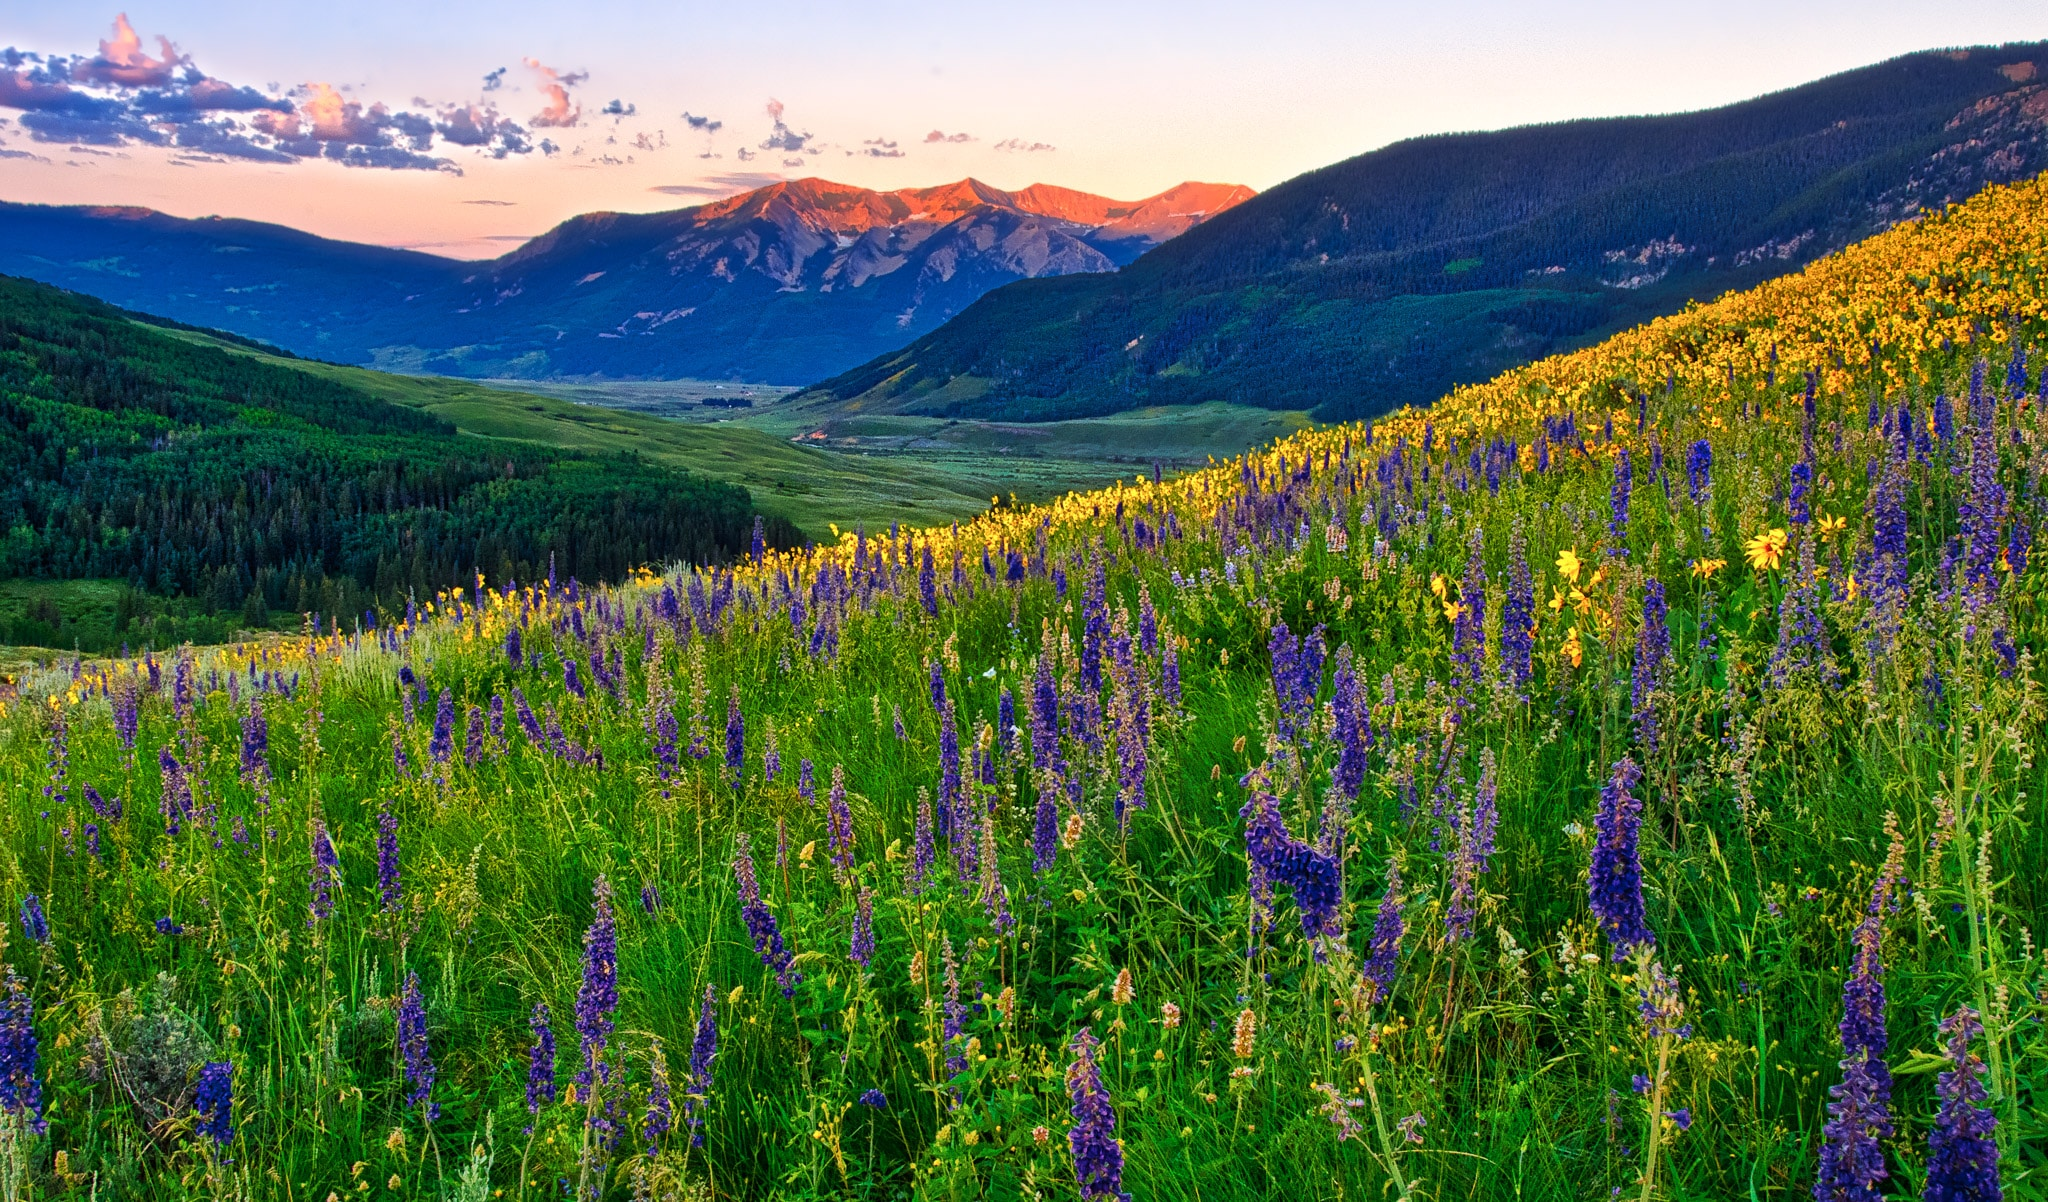 View looking west across a profusion of Sneezeweed, Mule's Ears, and larkspur at dawn near the Brush Creek Road southeast of Mt. Crested Butte, Colorado.